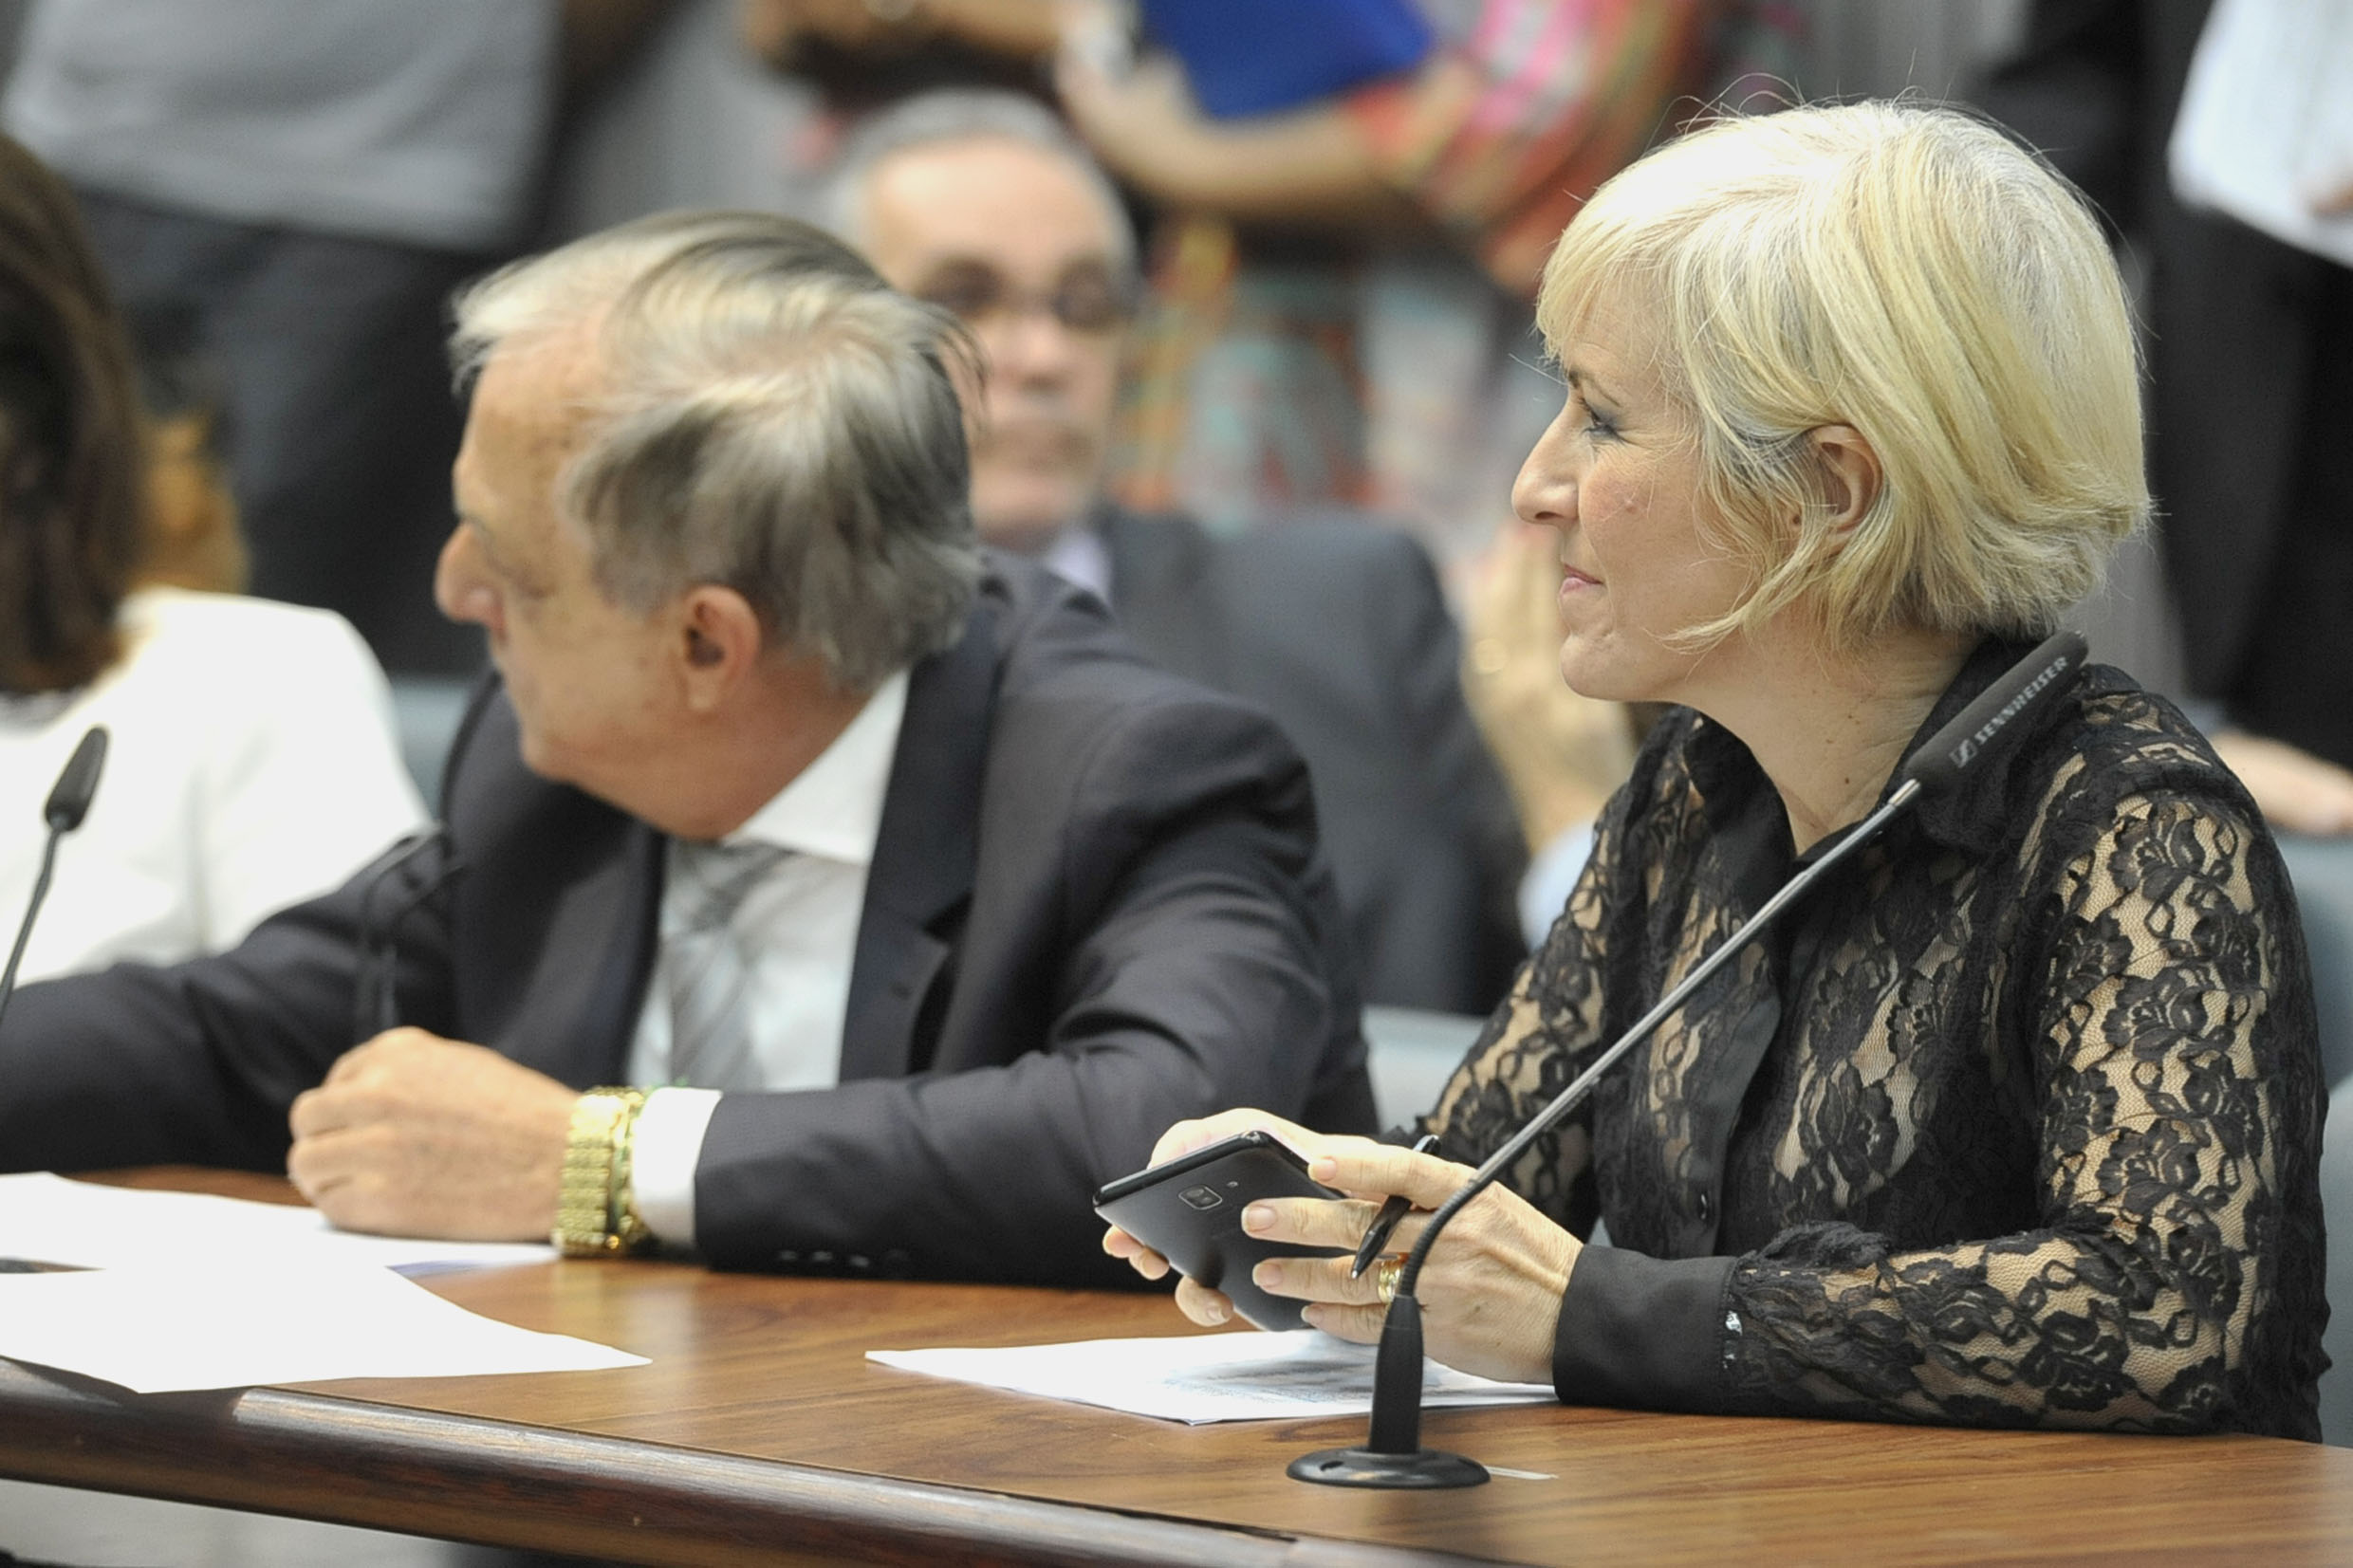 Parlamentares na comissão<a style='float:right' href='https://www3.al.sp.gov.br/repositorio/noticia/N-05-2019/fg234494.jpg' target=_blank><img src='/_img/material-file-download-white.png' width='14px' alt='Clique para baixar a imagem'></a>